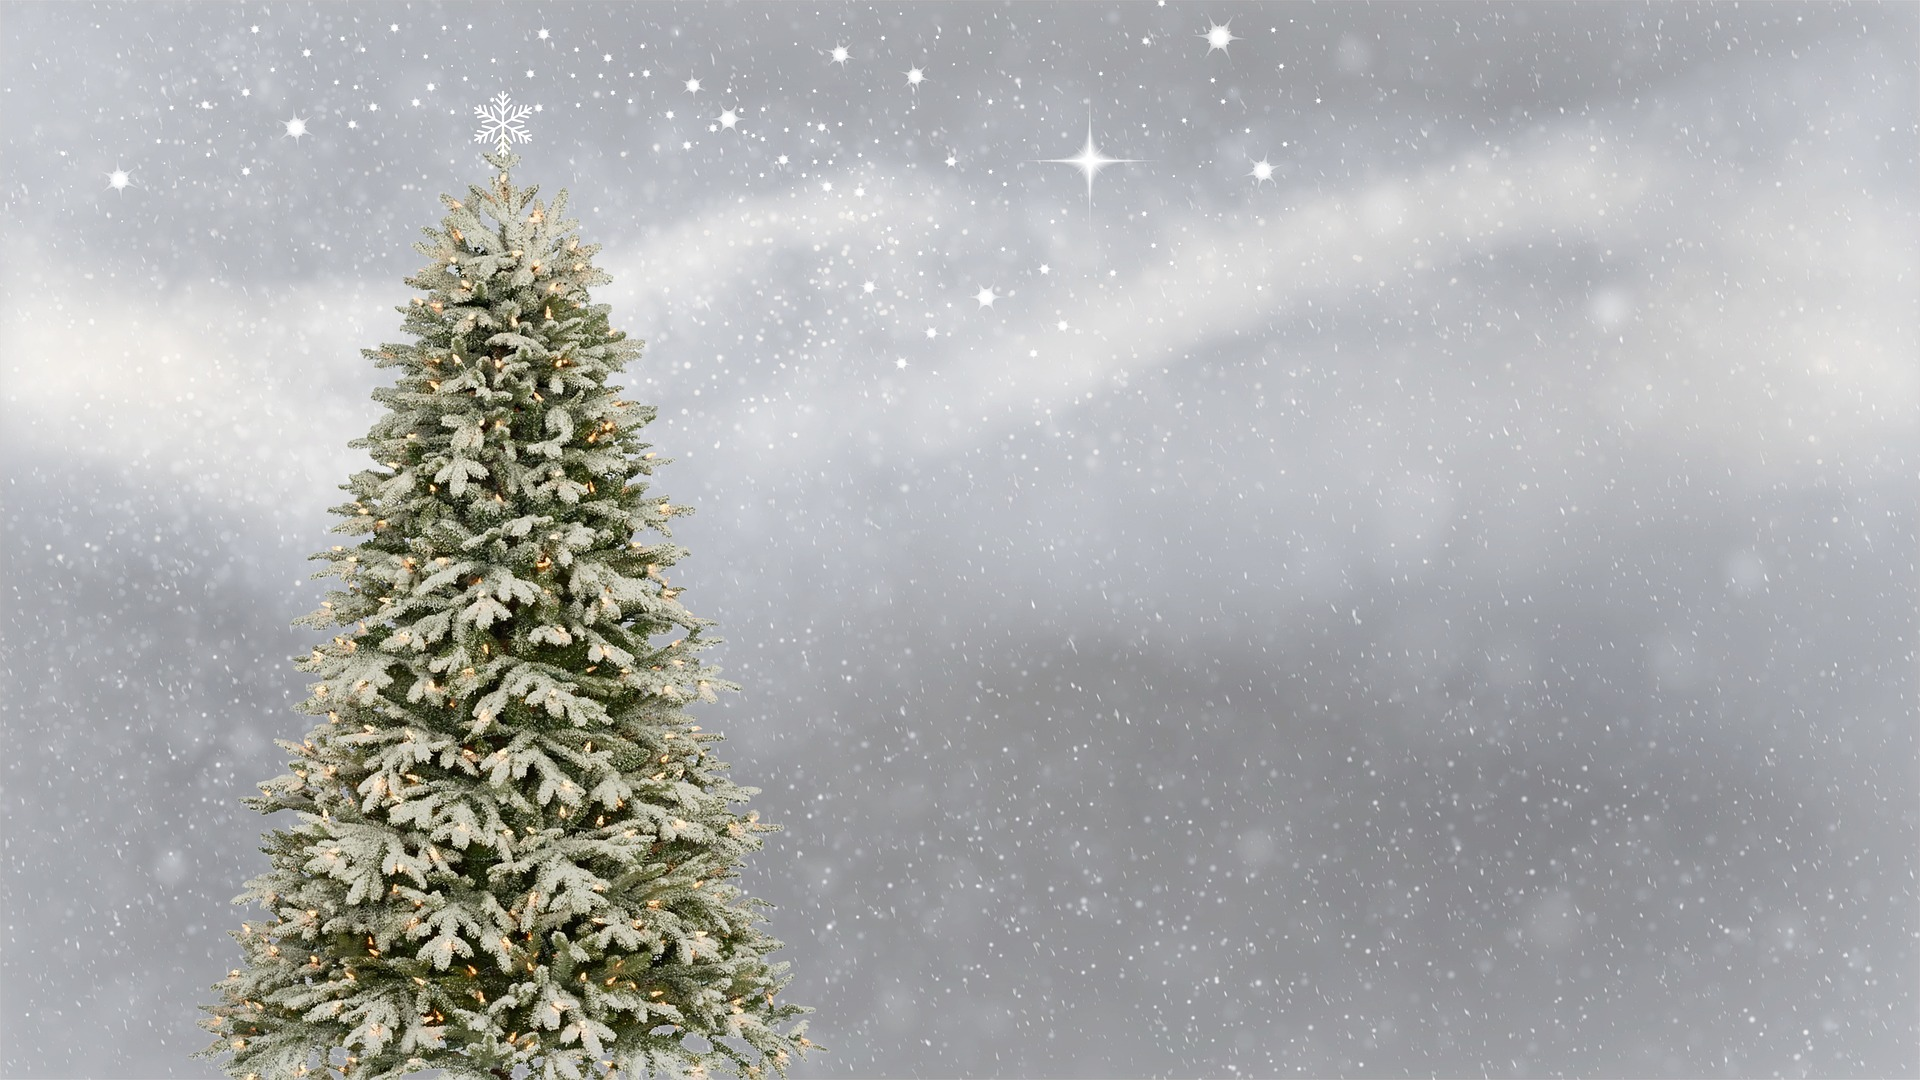 Find Out How/Where To Recycle Your Christmas Tree This Year!